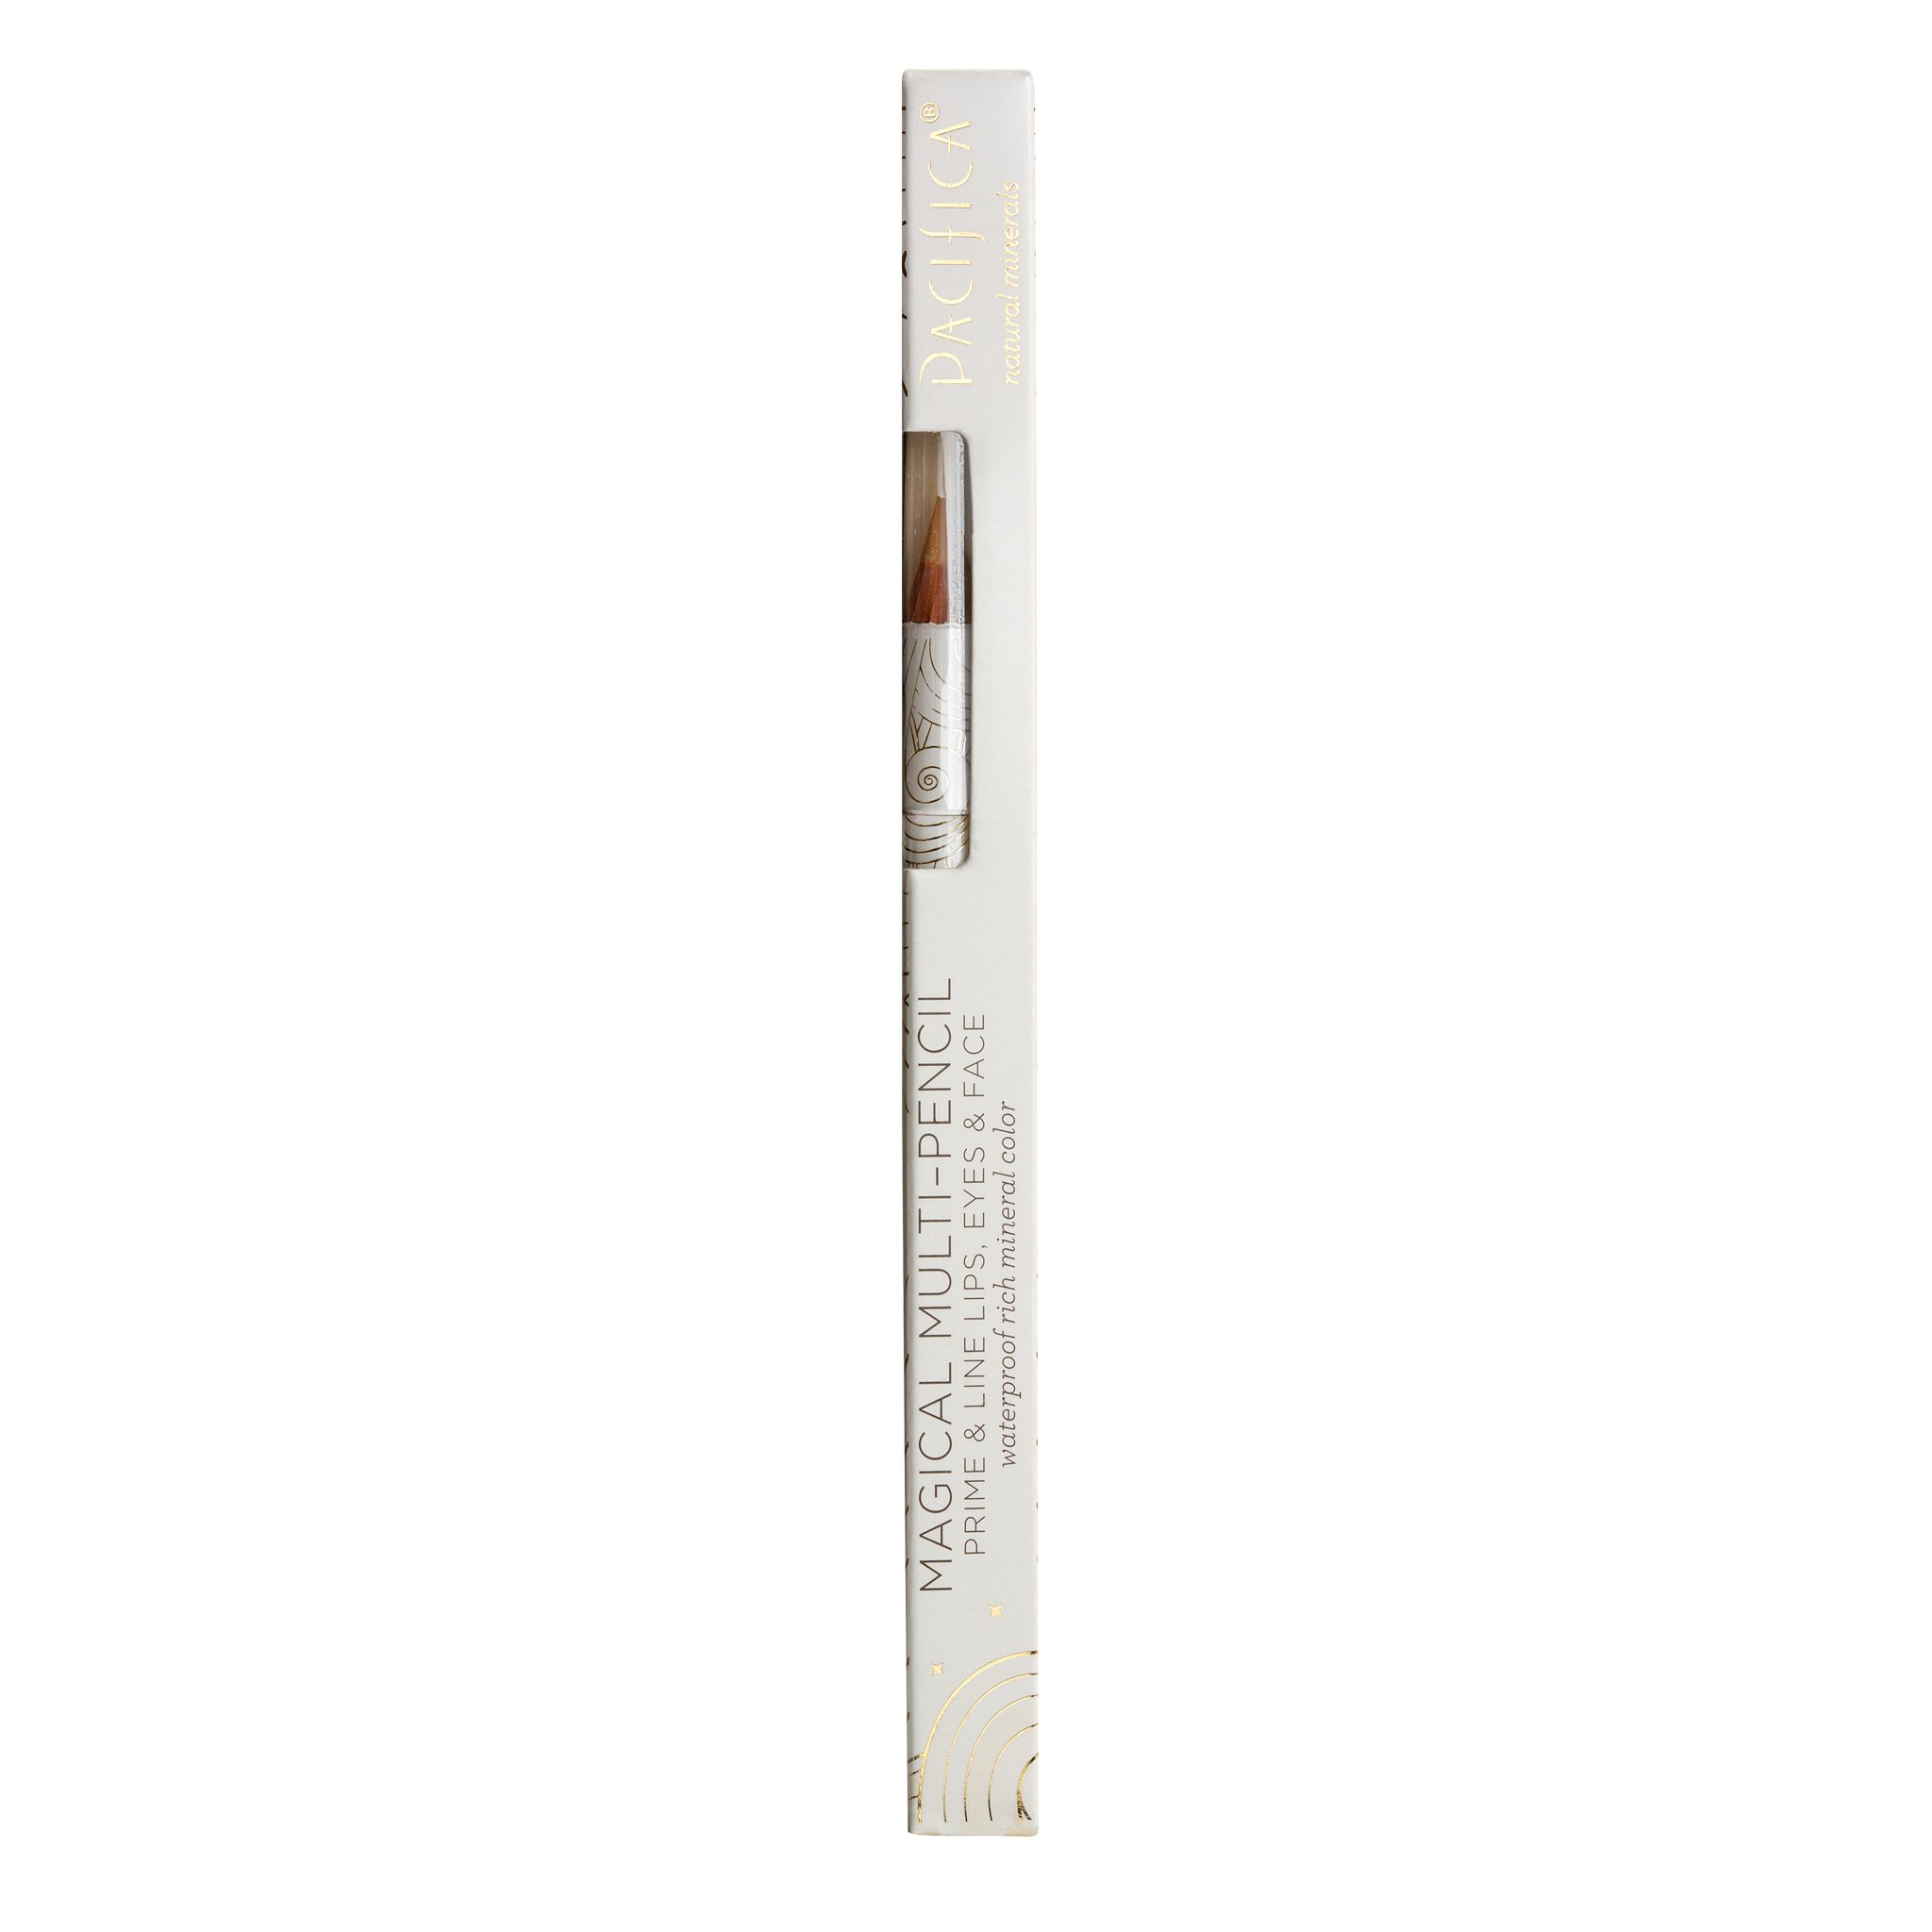 Pacifica Beauty Magical Multi-pencil Prime & Line Lips Eyes & Face, 0.1 Ounce